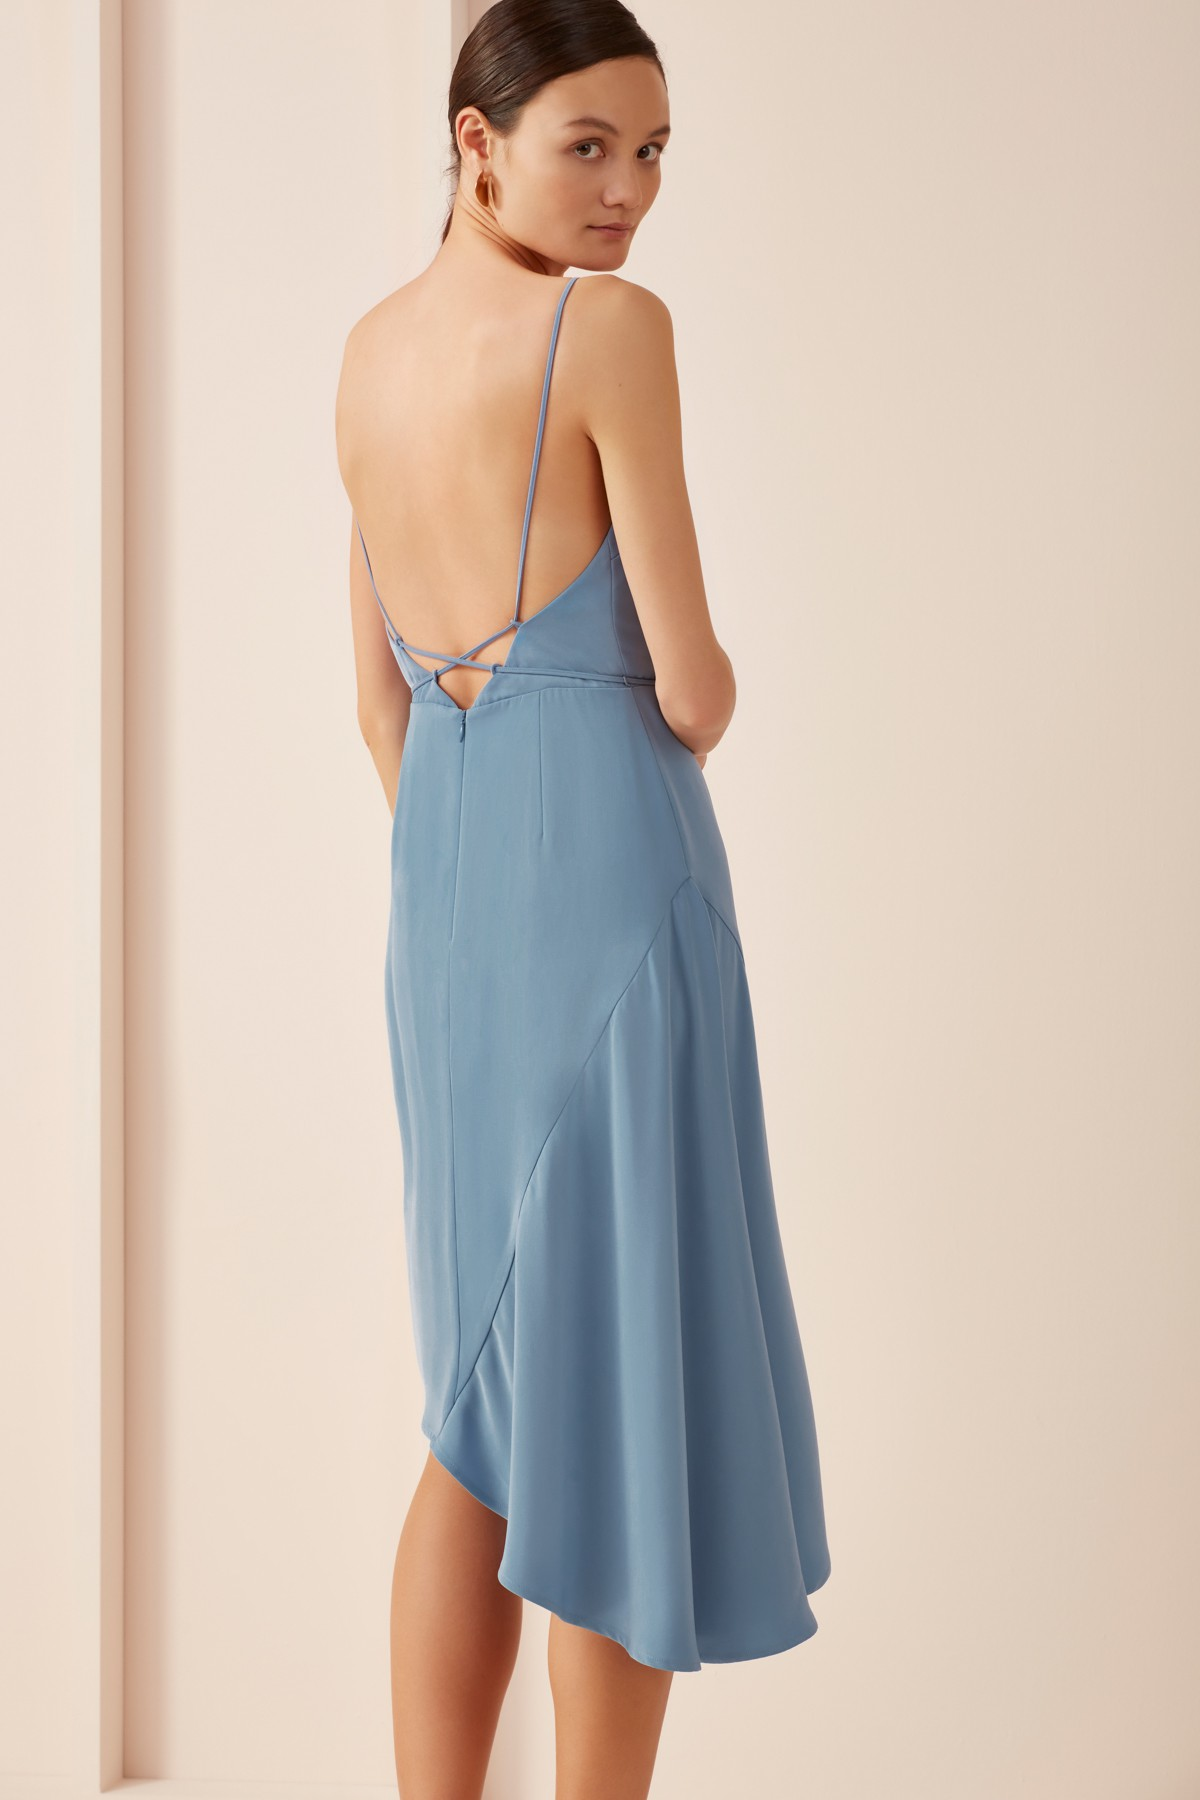 1611_ks_untouchable_midi_dress_light_blue_sh_1683_1.jpg